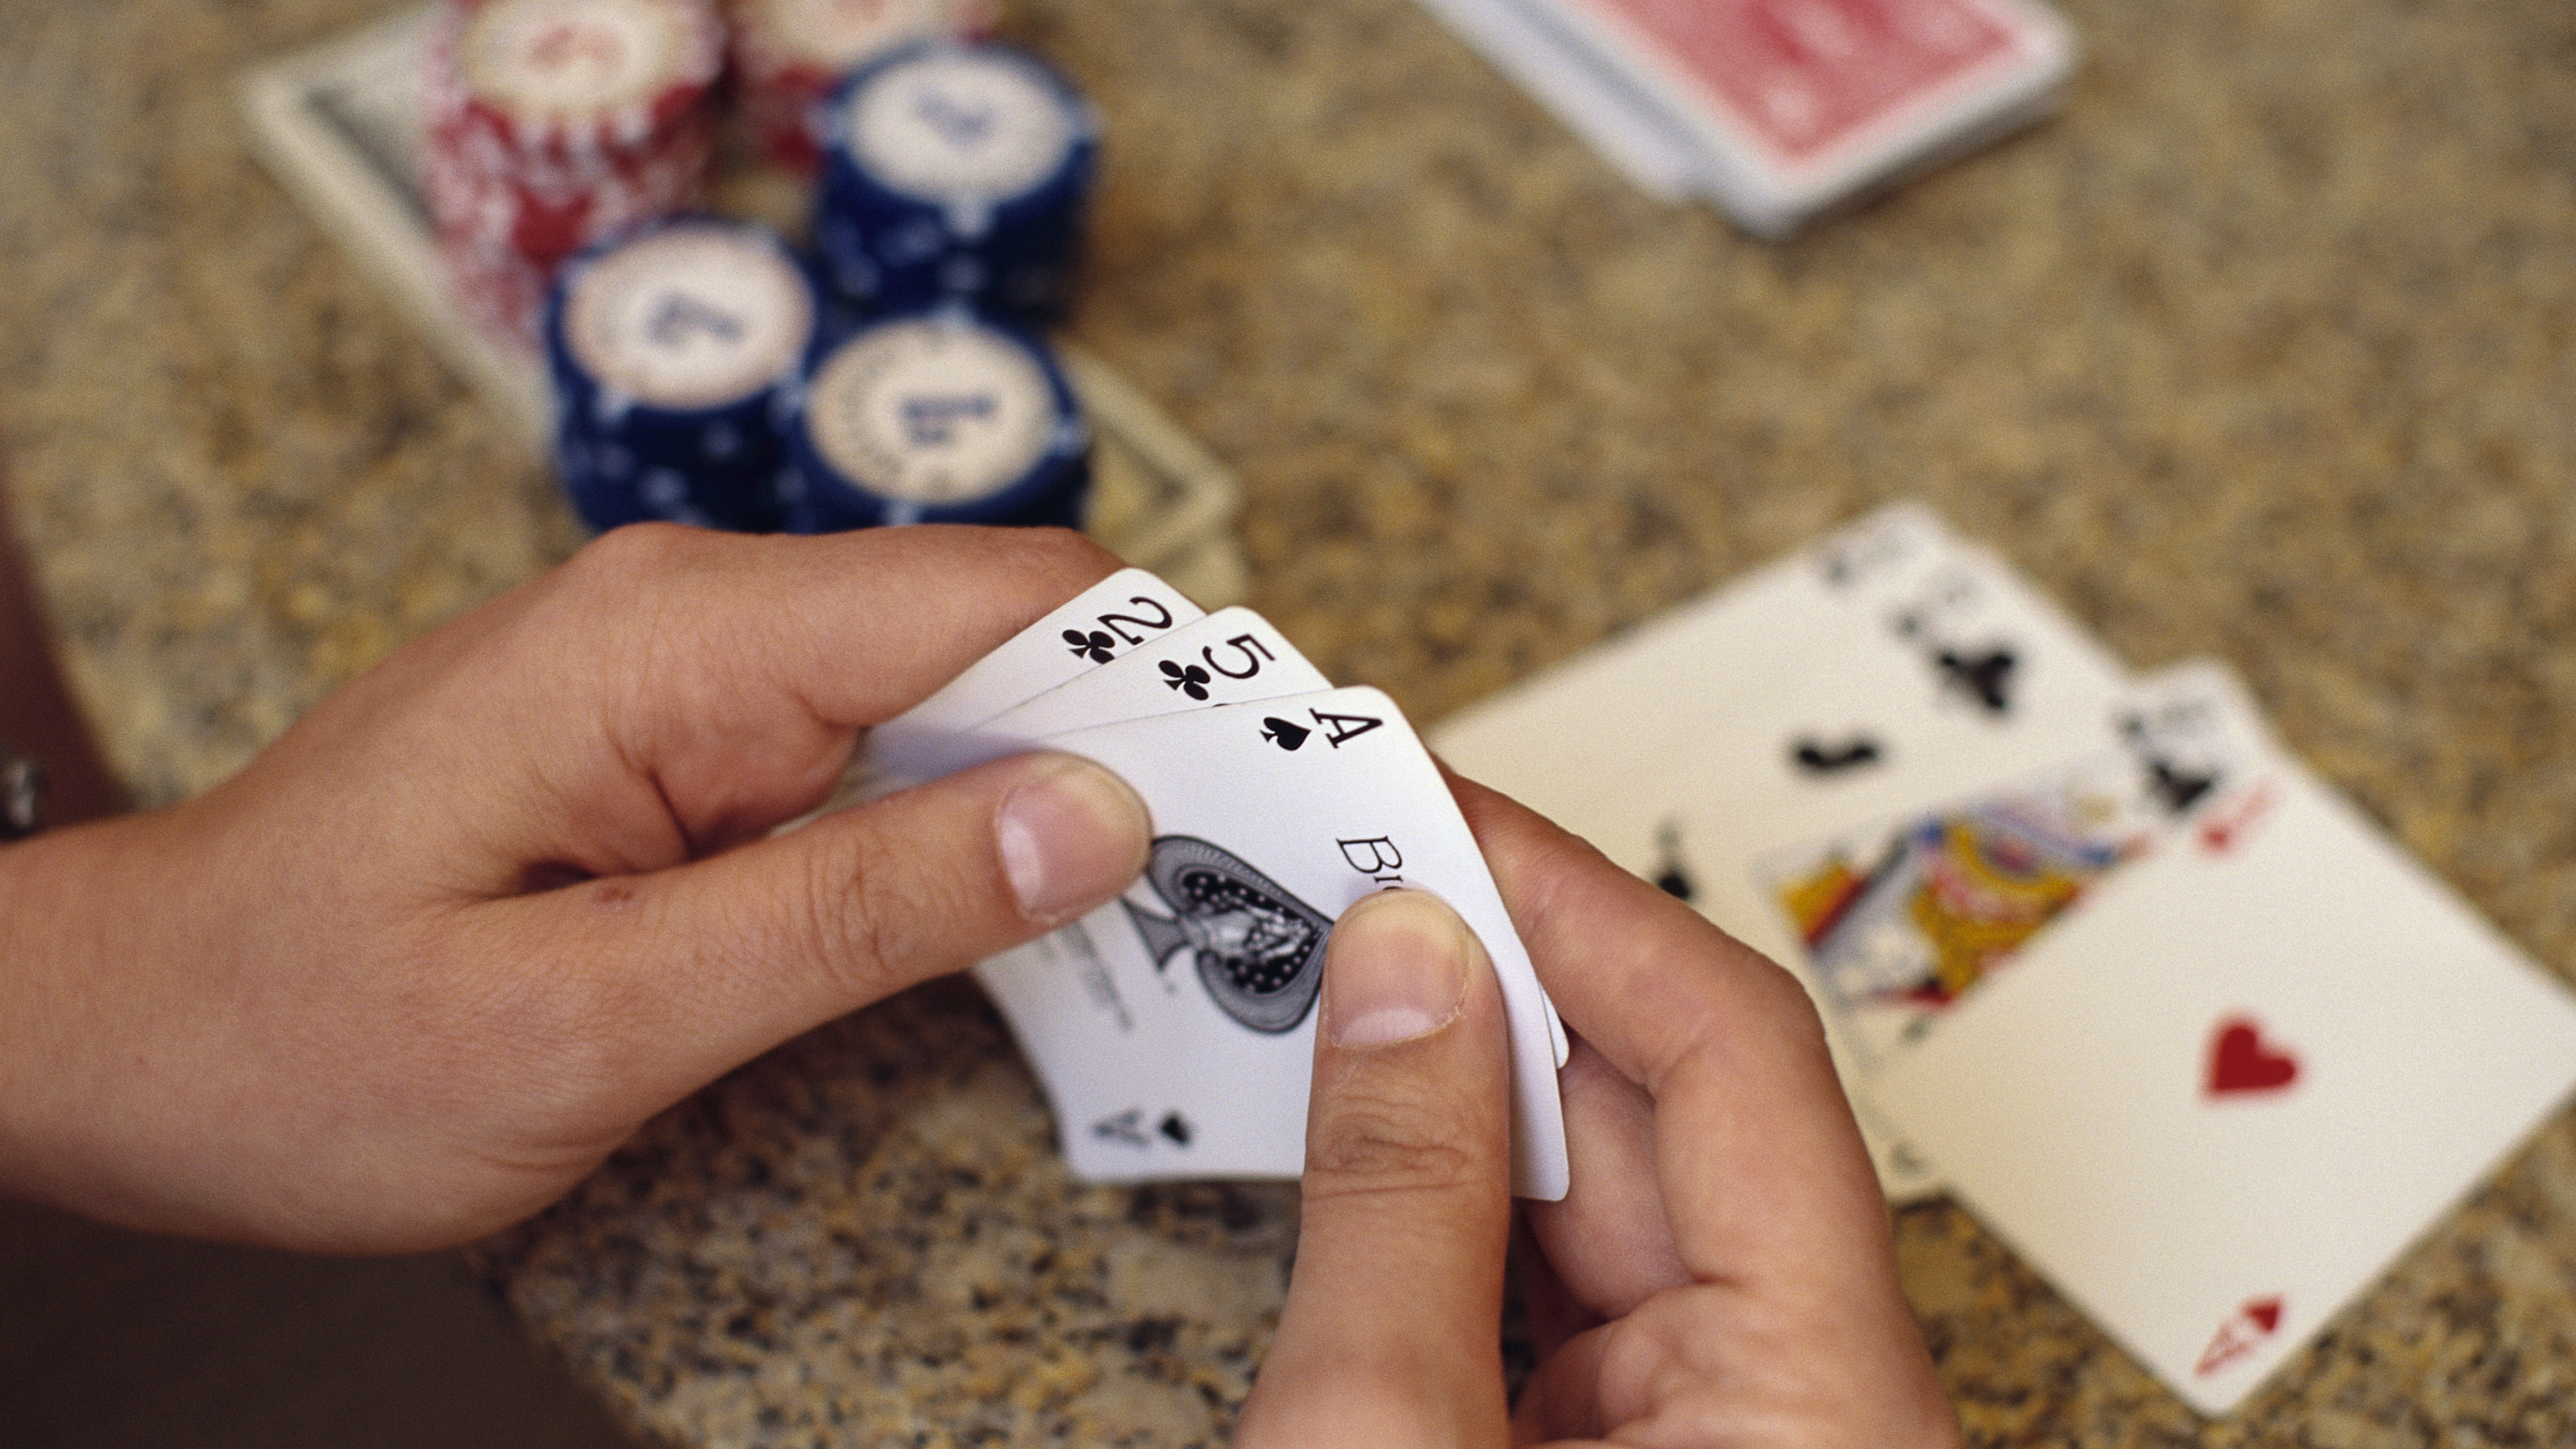 Poker player staying in dark bathroom for 30 days for $100,000 bet